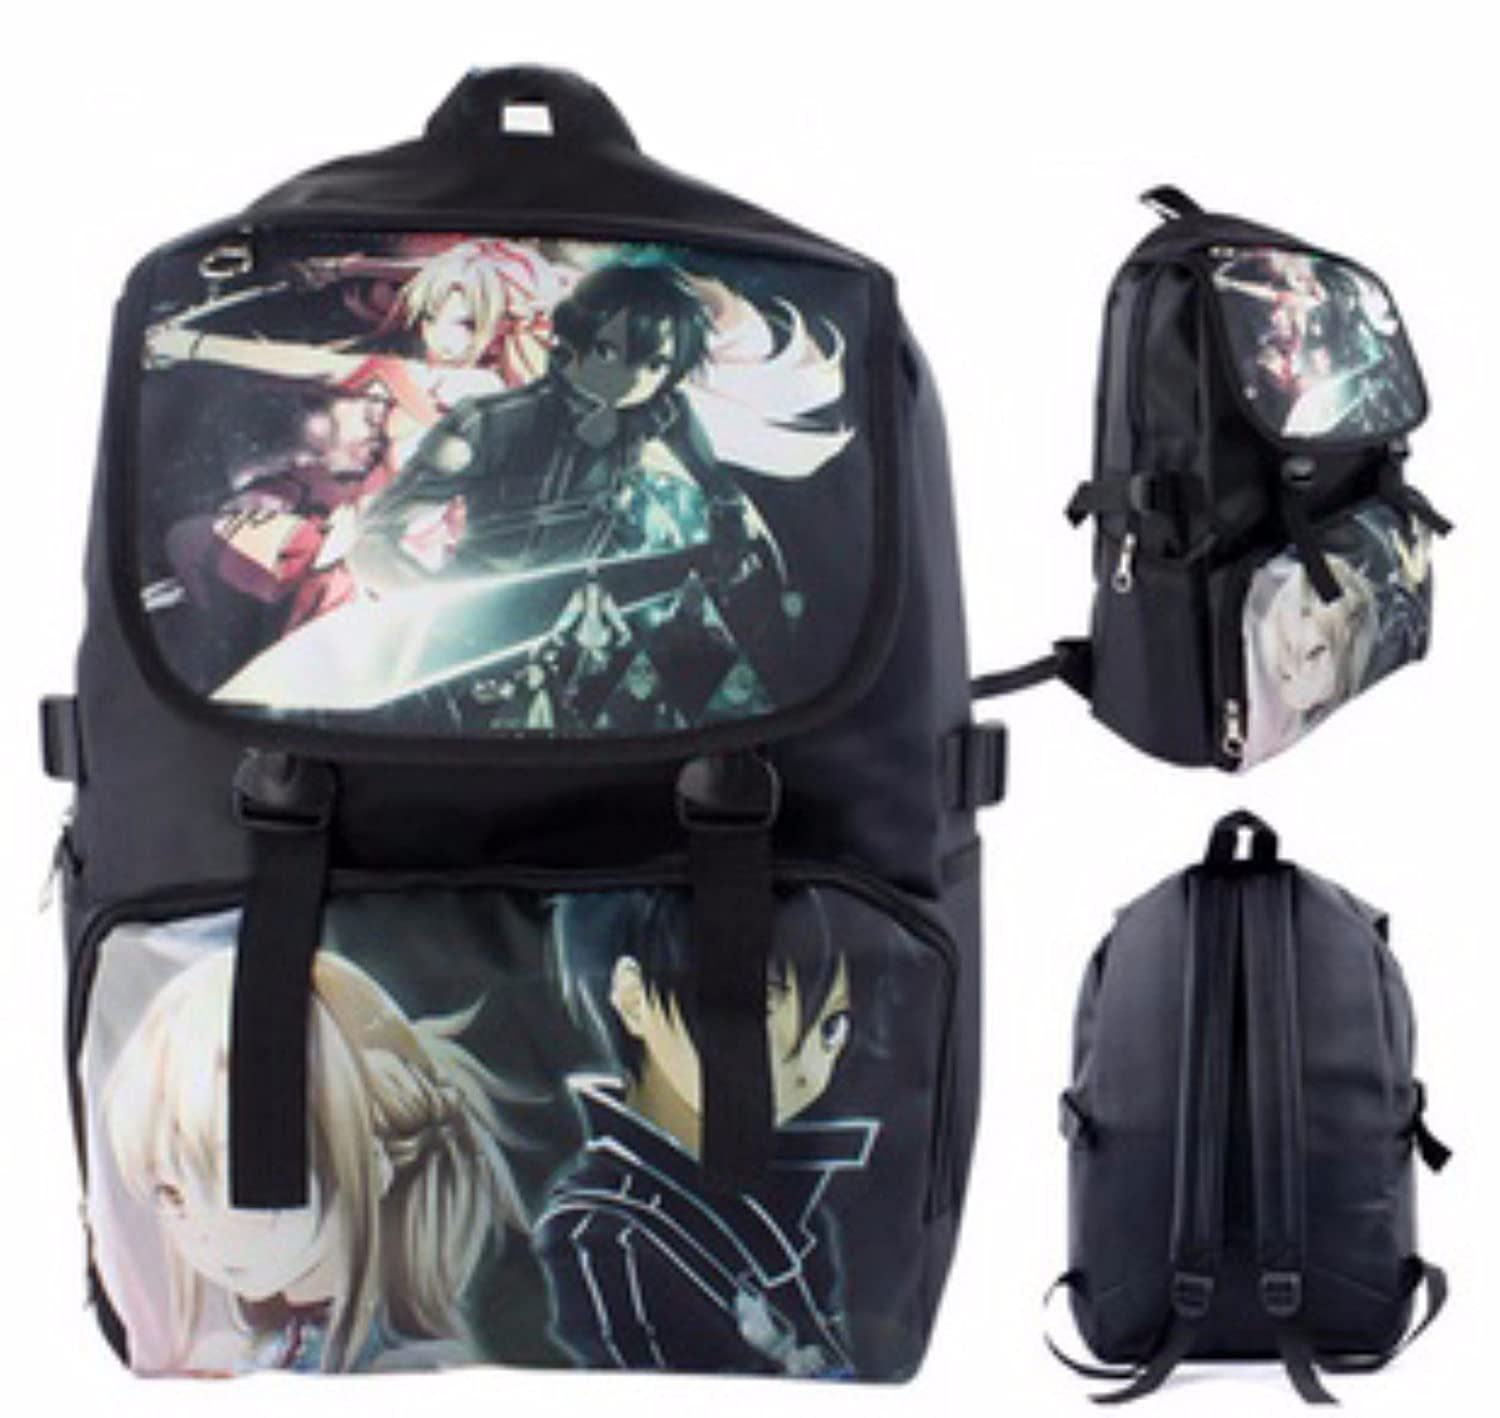 new Escuela Mochila Cartoon Casual Cartera de libros Backpack Guerrero Espacio FATE Gintama Tokyo Ghoul One piece Attack On Titan Fairy Tail rare animanga